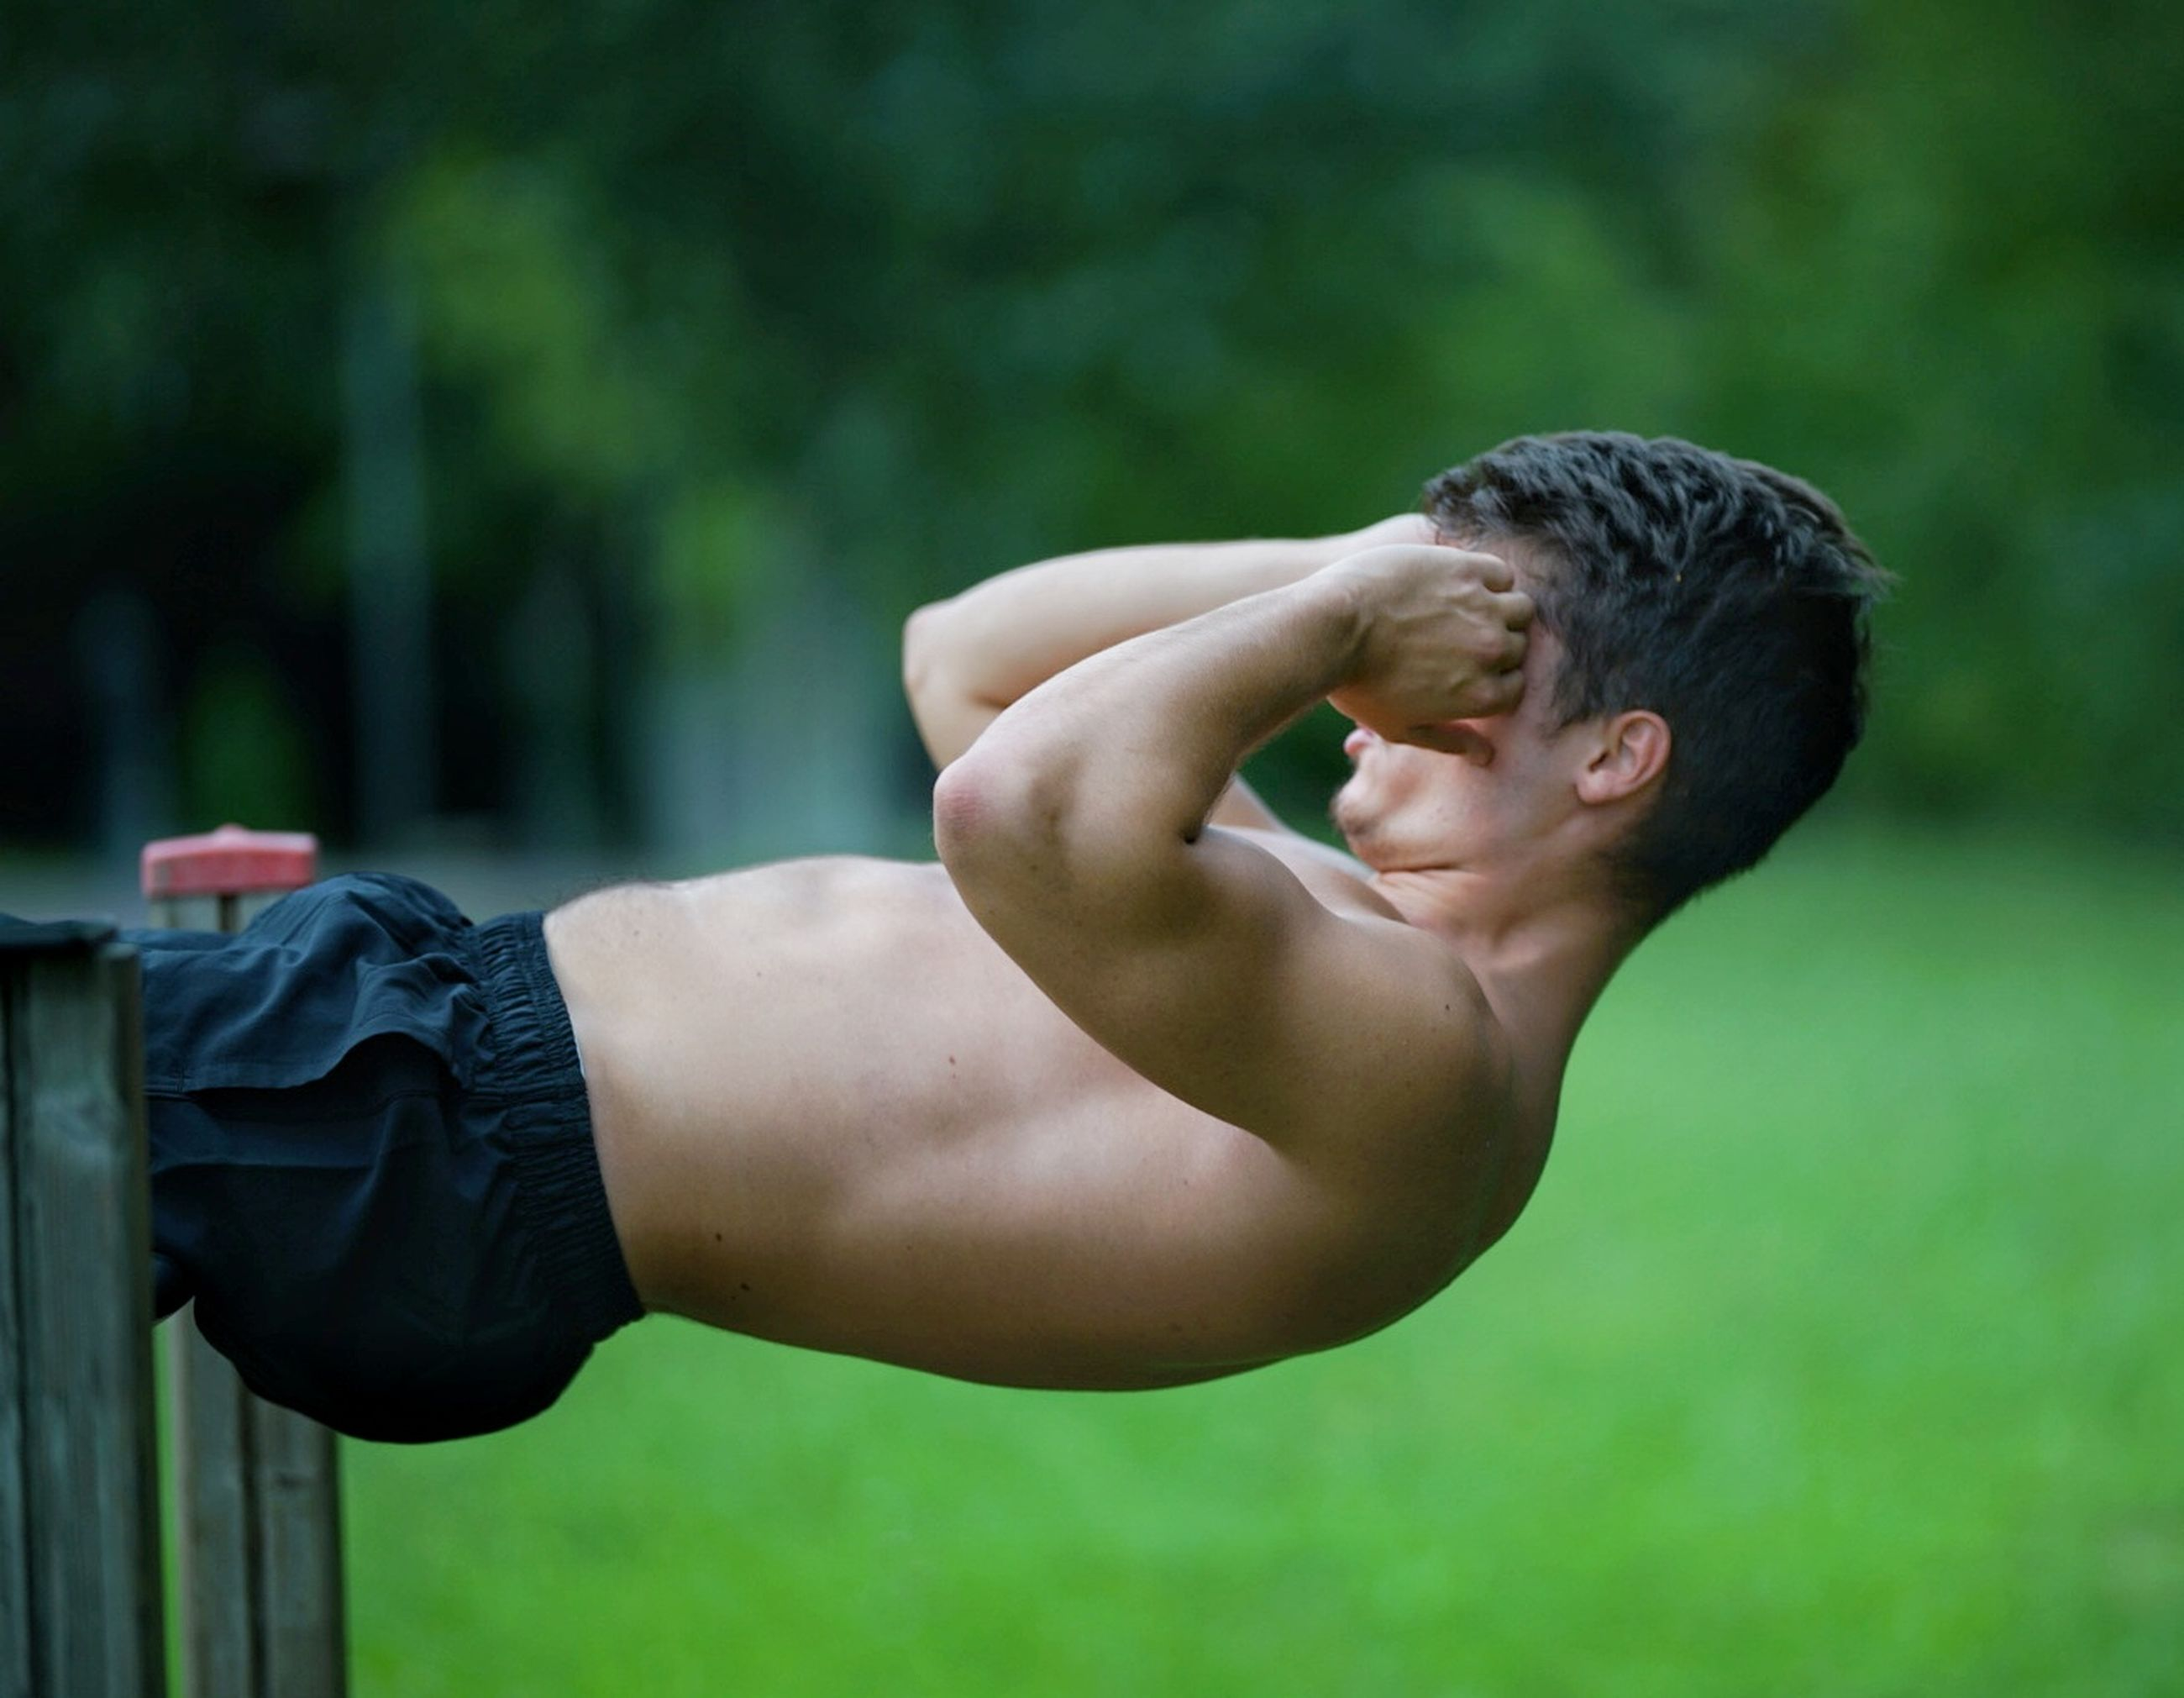 one person, real people, lifestyles, focus on foreground, day, shirtless, men, plant, nature, males, strength, young adult, exercising, healthy lifestyle, young men, green color, leisure activity, muscular build, human body part, effort